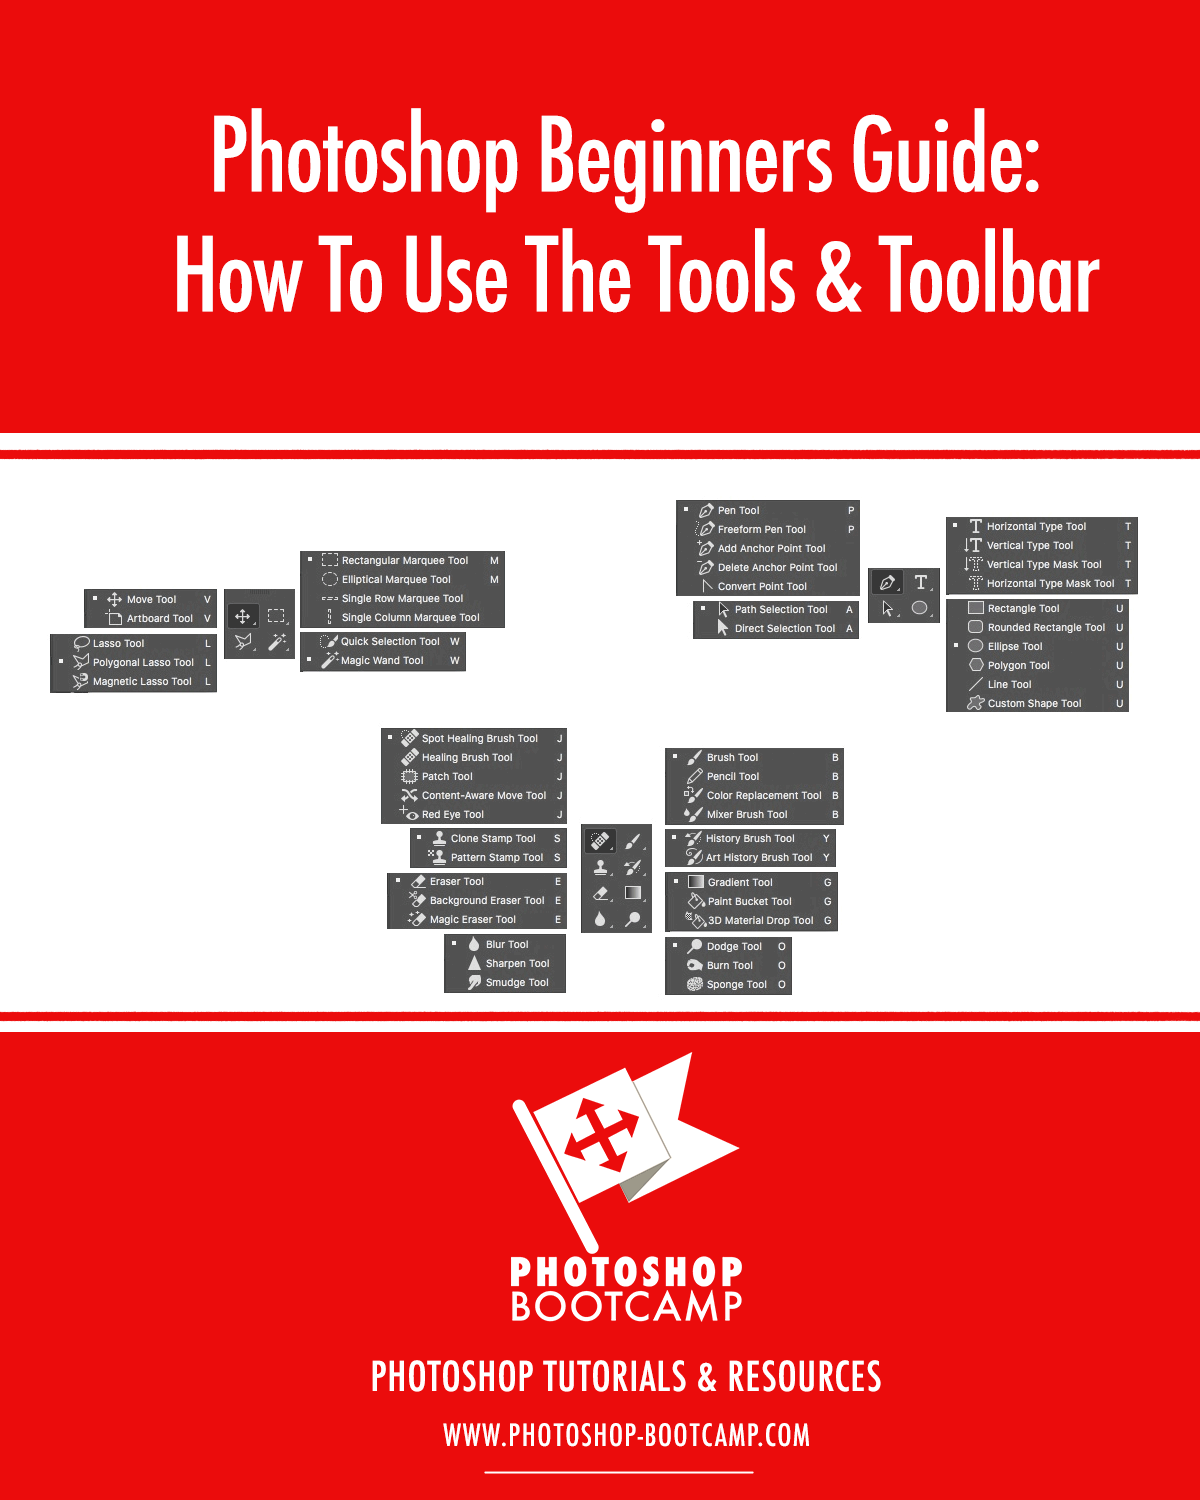 Beginners guide to photoshop tools toolbar photoshop bootcamp photoshop beginners guide how to use the tools toolbar baditri Gallery